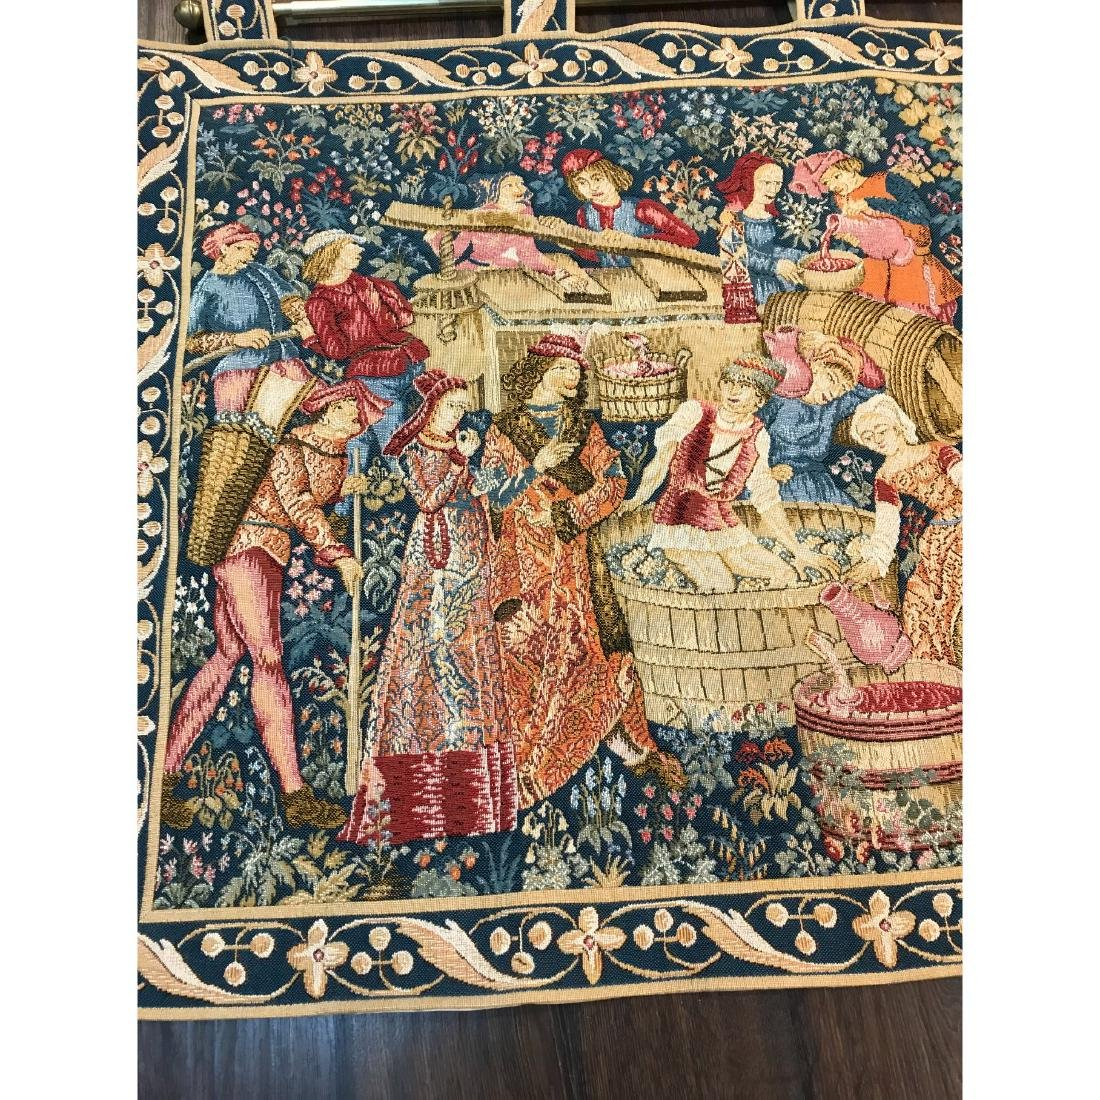 Tapestry with Scene of Medieval Wine Making w/ Rod - 2